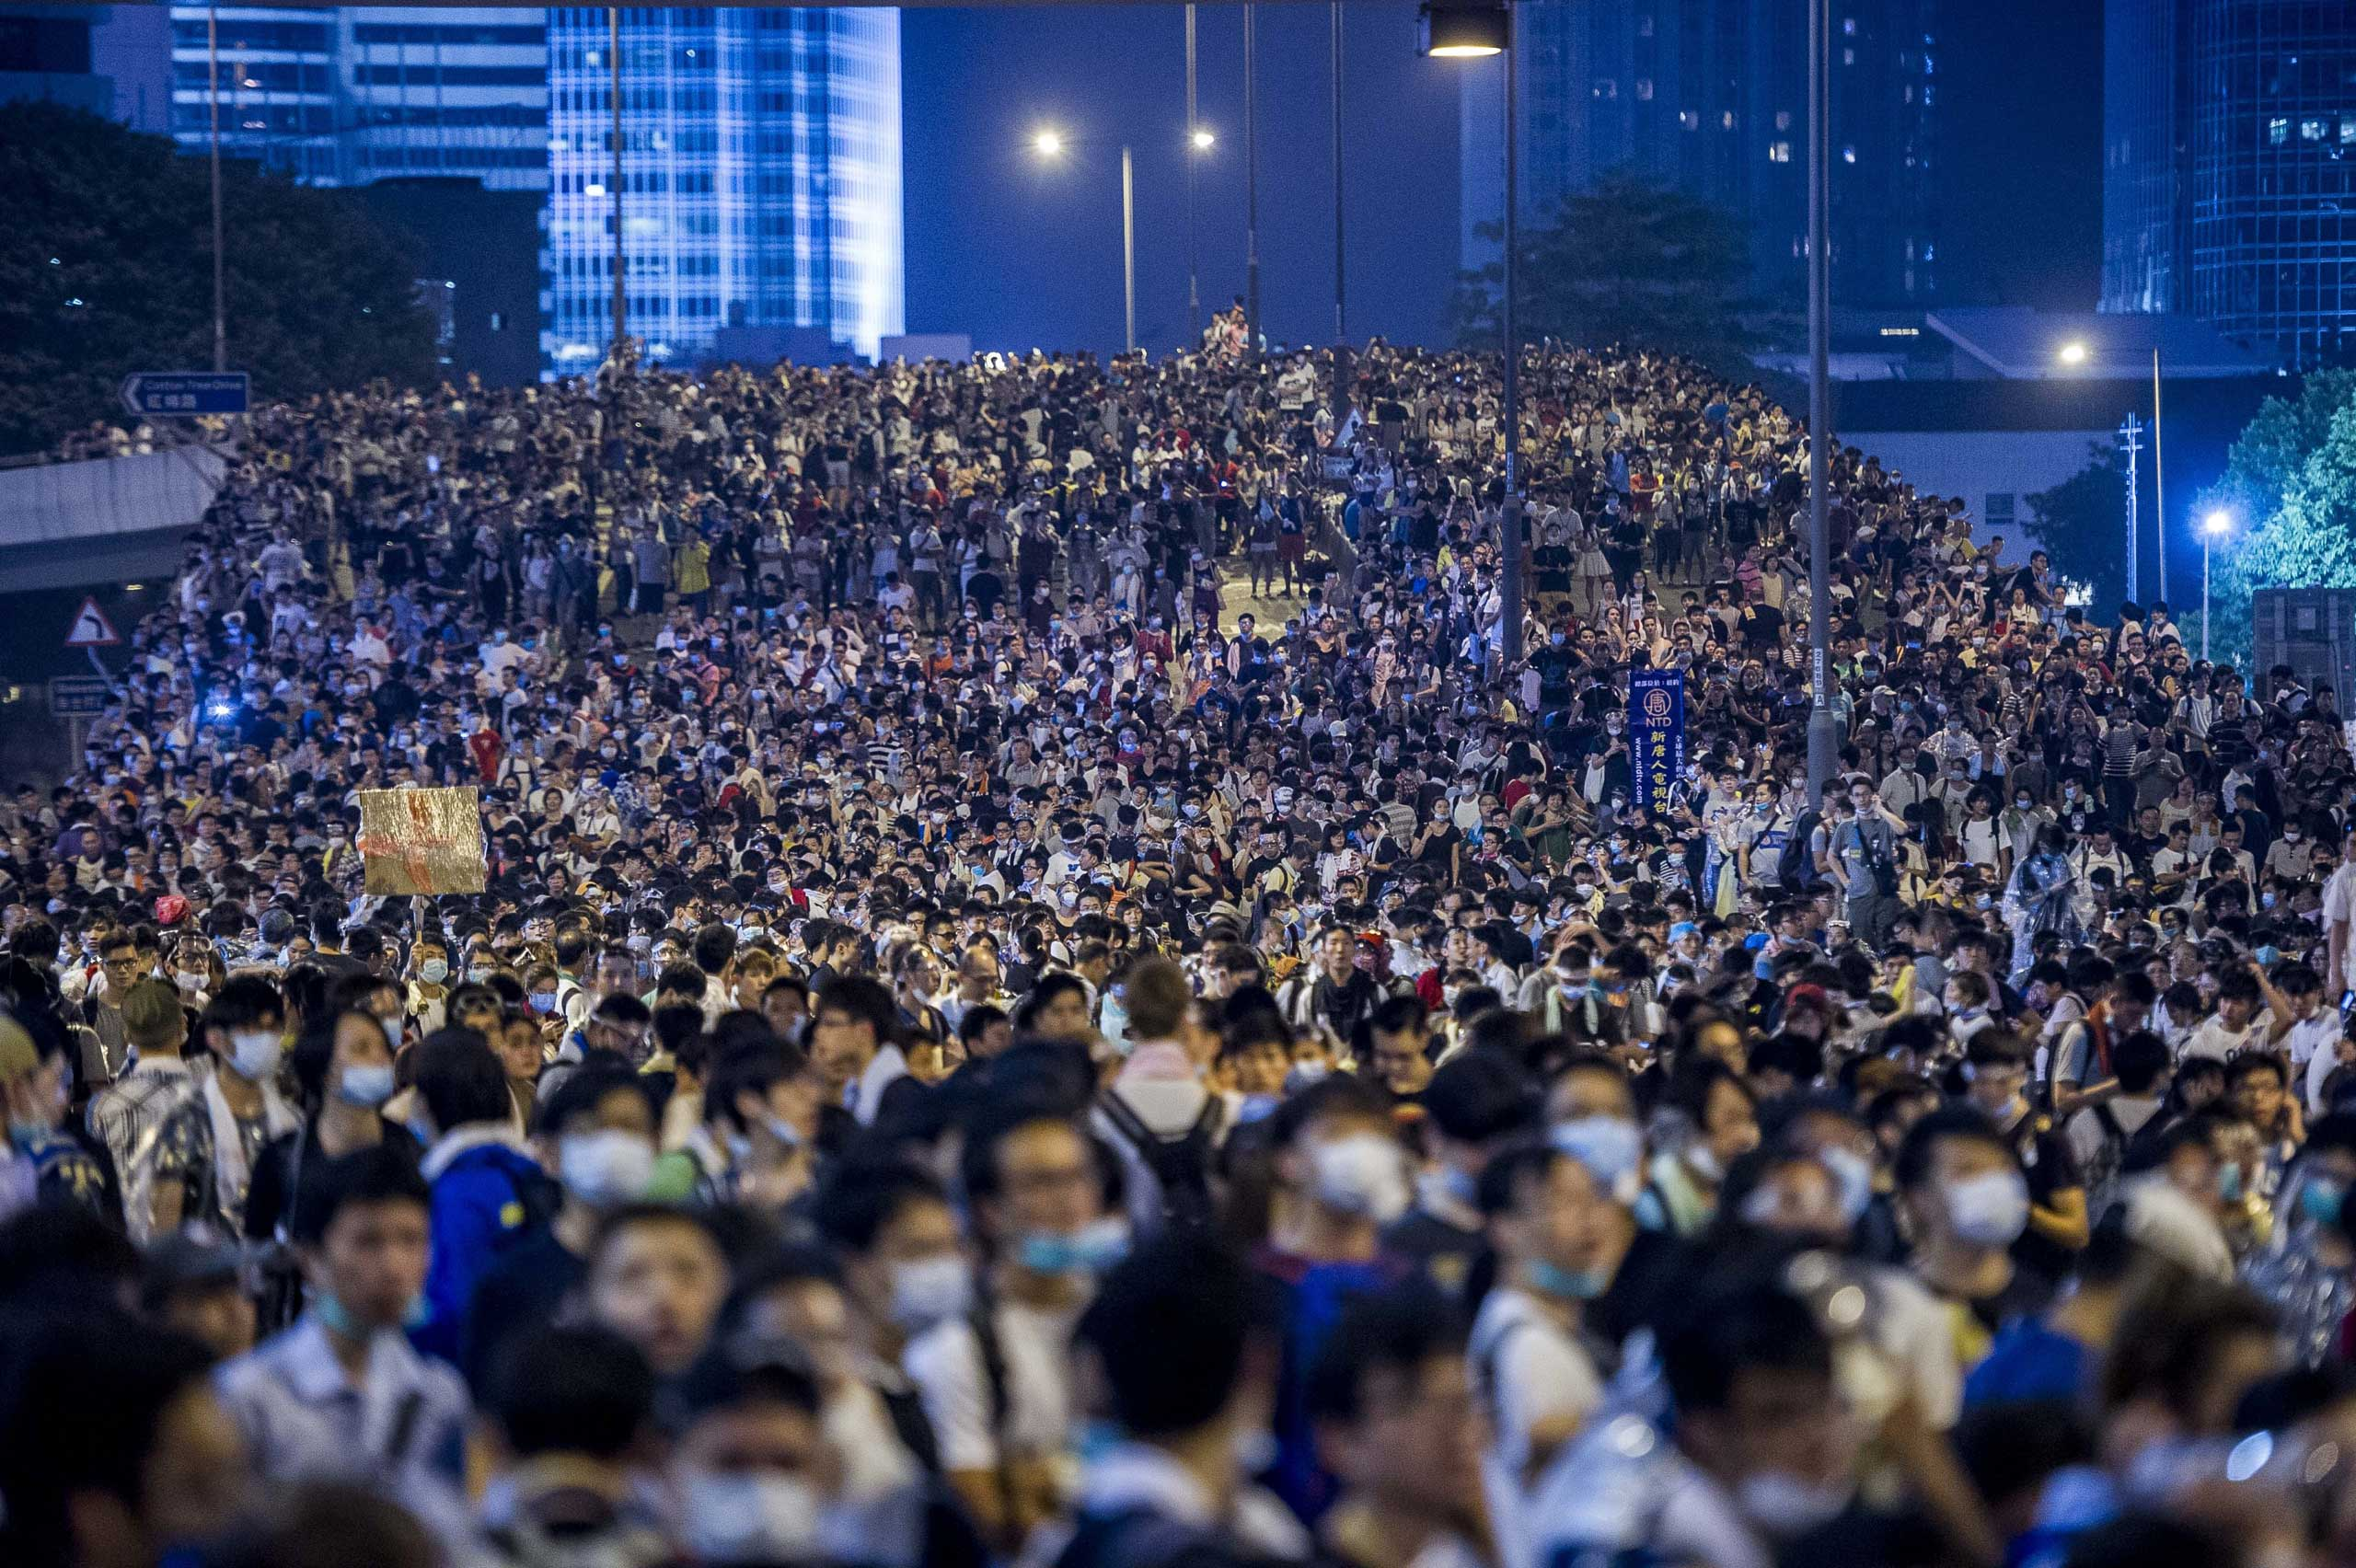 Pro-democracy protesters demonstrate in Hong Kong on Sept. 28, 2014.